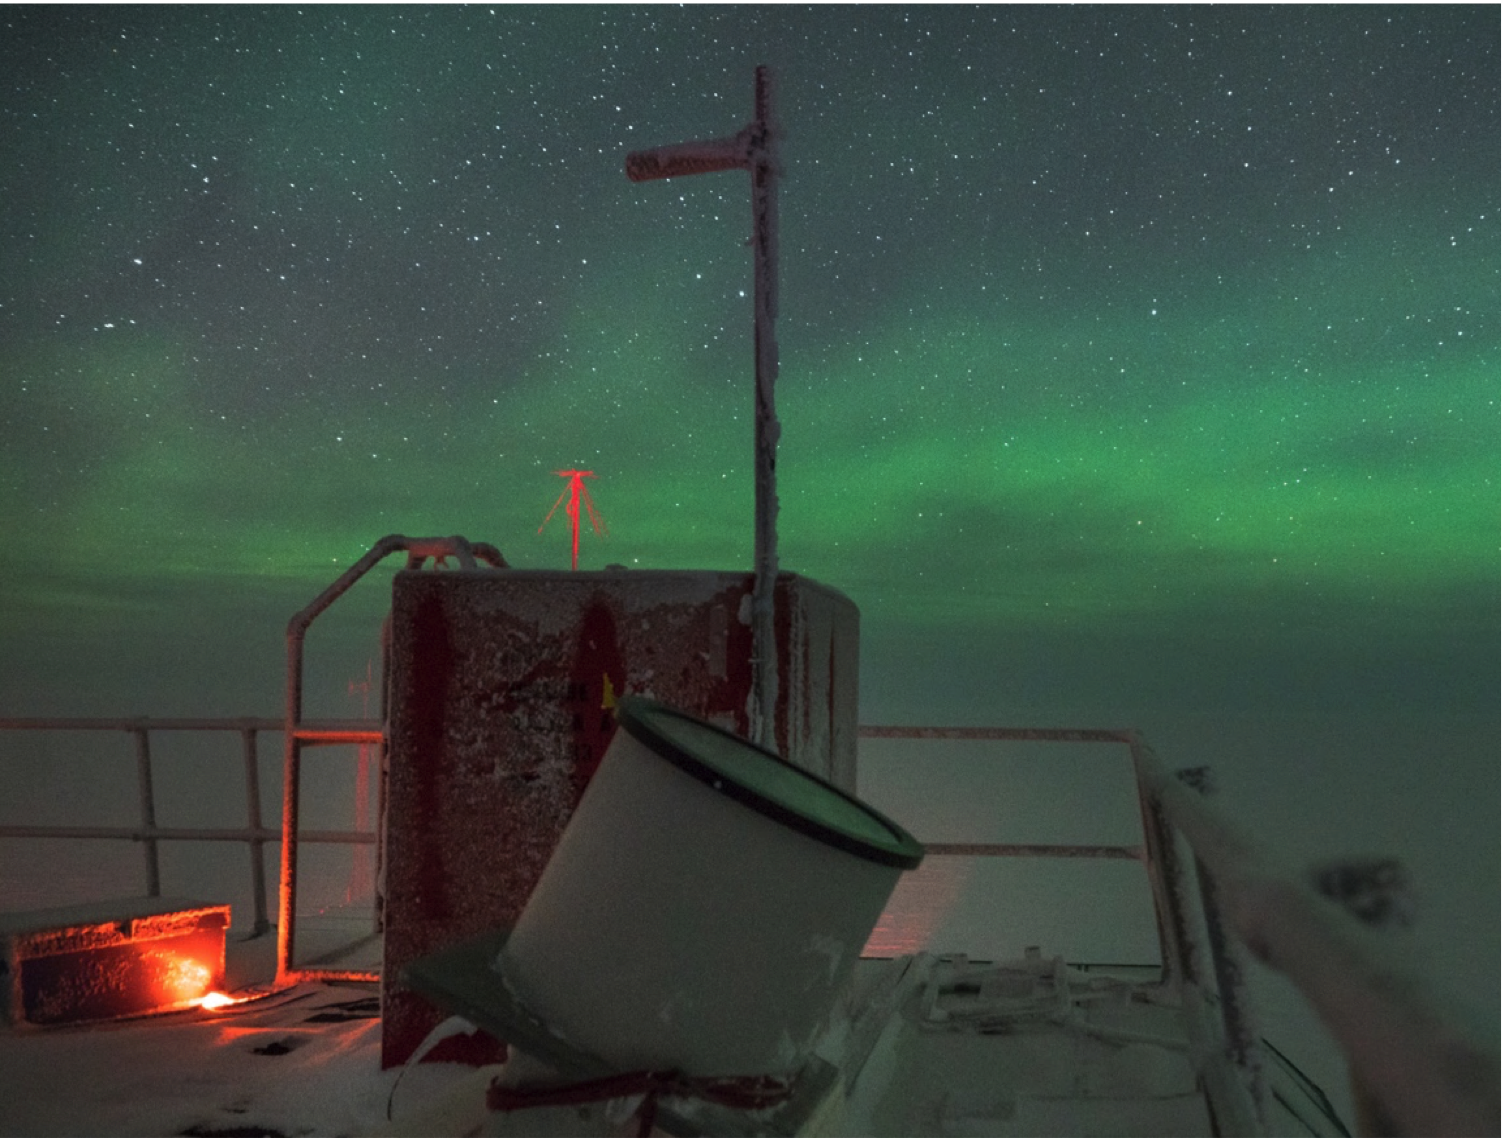 news_feat_new-optical-telescope-proves-to-be-fit-for-south-pole